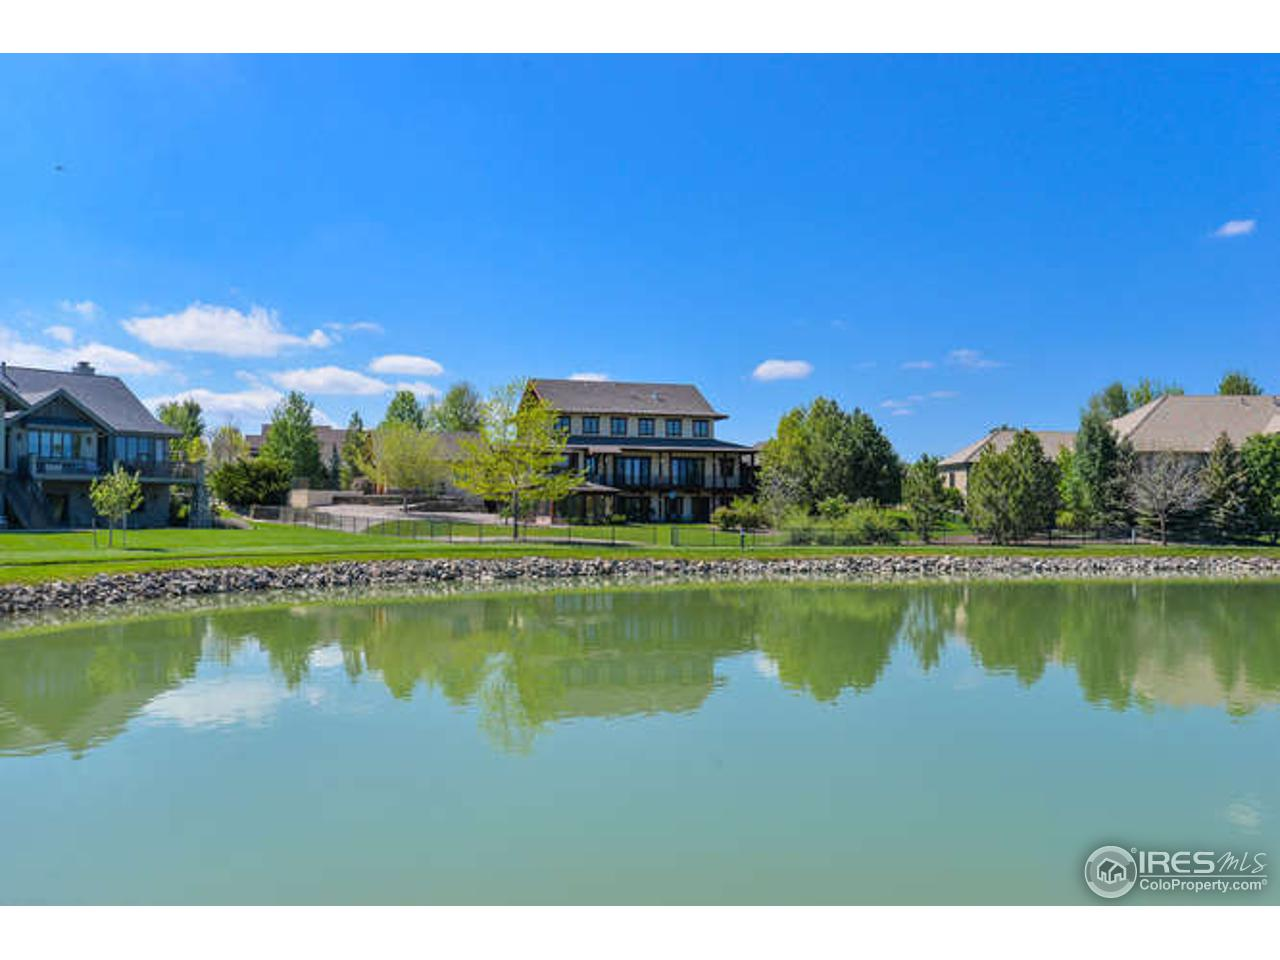 8238 Golden Eagle Rd, Fort Collins, CO 80528